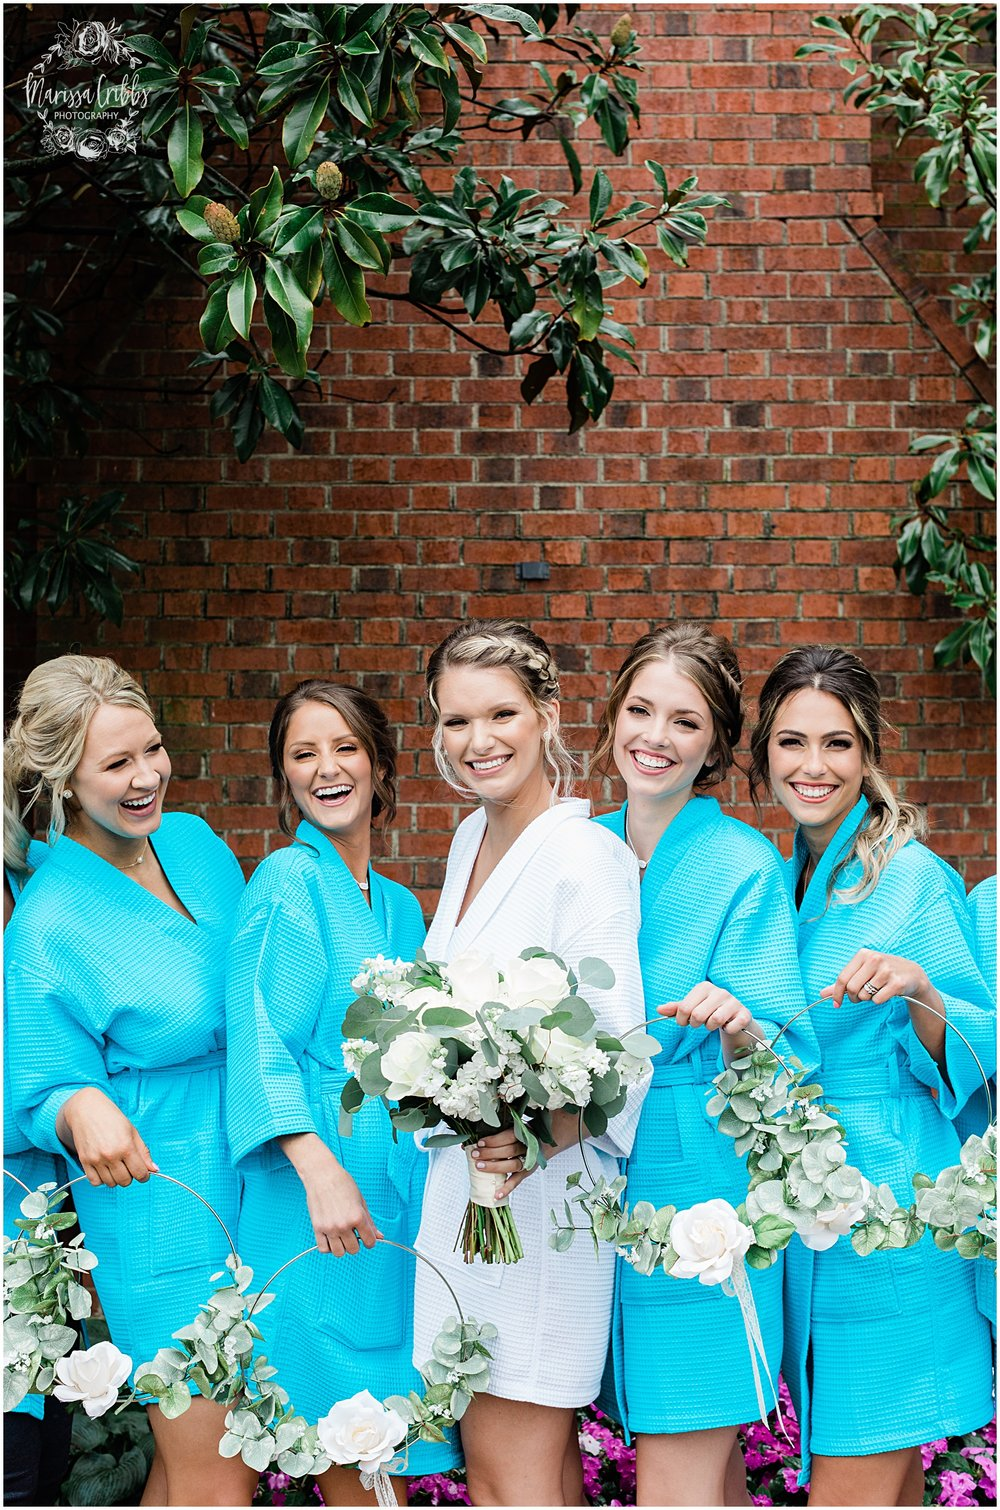 ROUNKLES WEDDING | MARISSA CRIBBS PHOTOGRAPHY | MILDALE FARM_6088.jpg